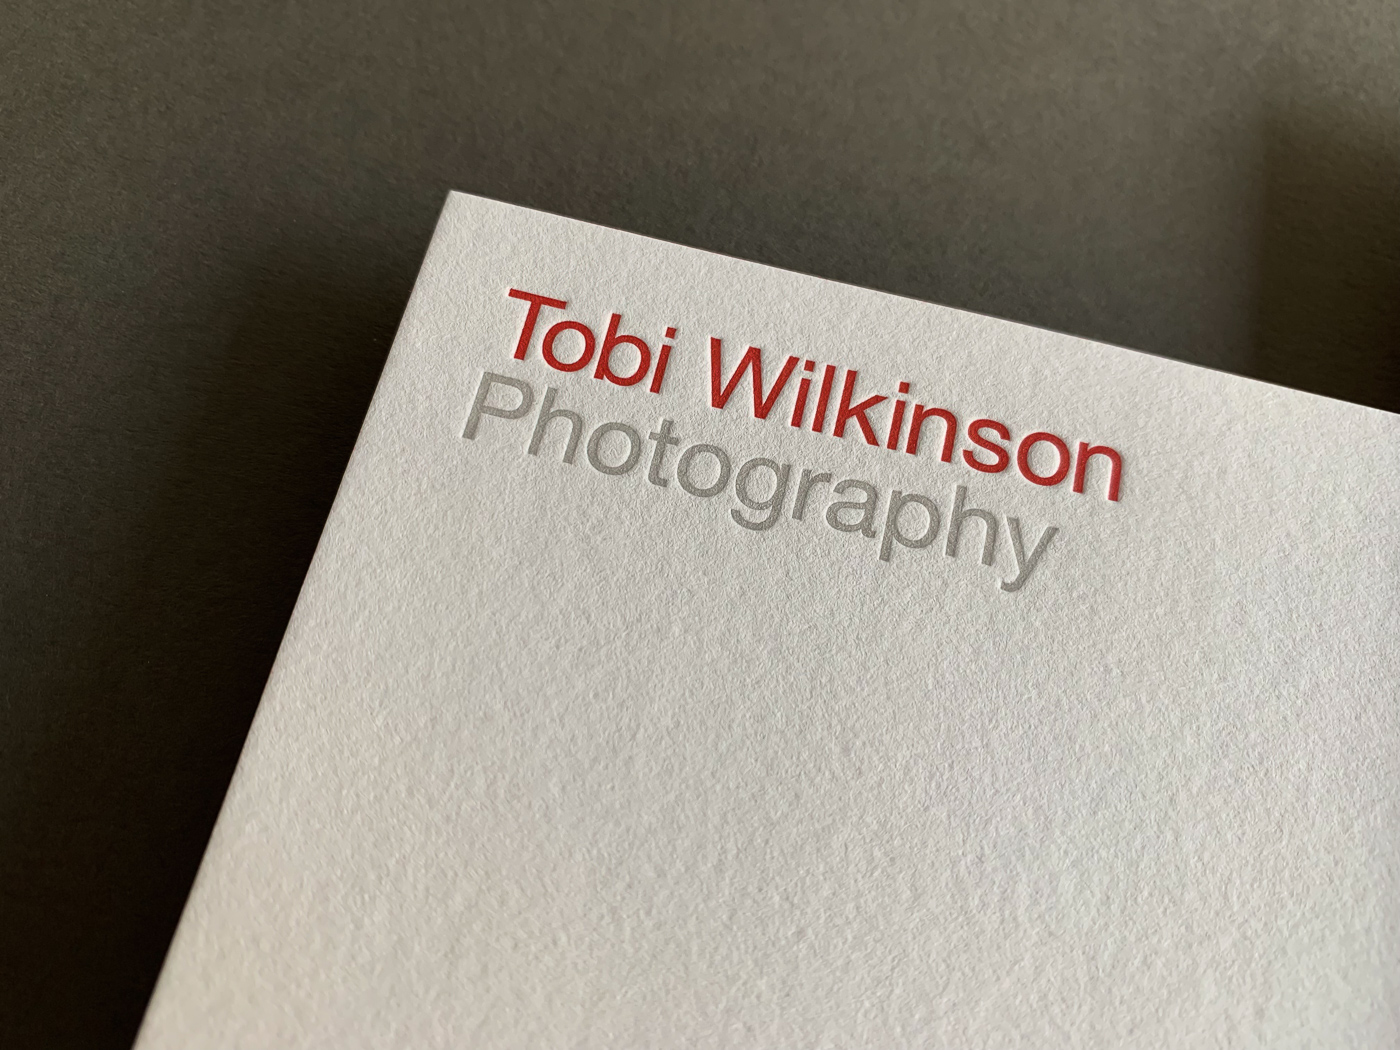 With compliments cards letterpress printed for Tobi Wilkinson on Colorplan Vermilion duplexed to Colorplan Pristine White 2